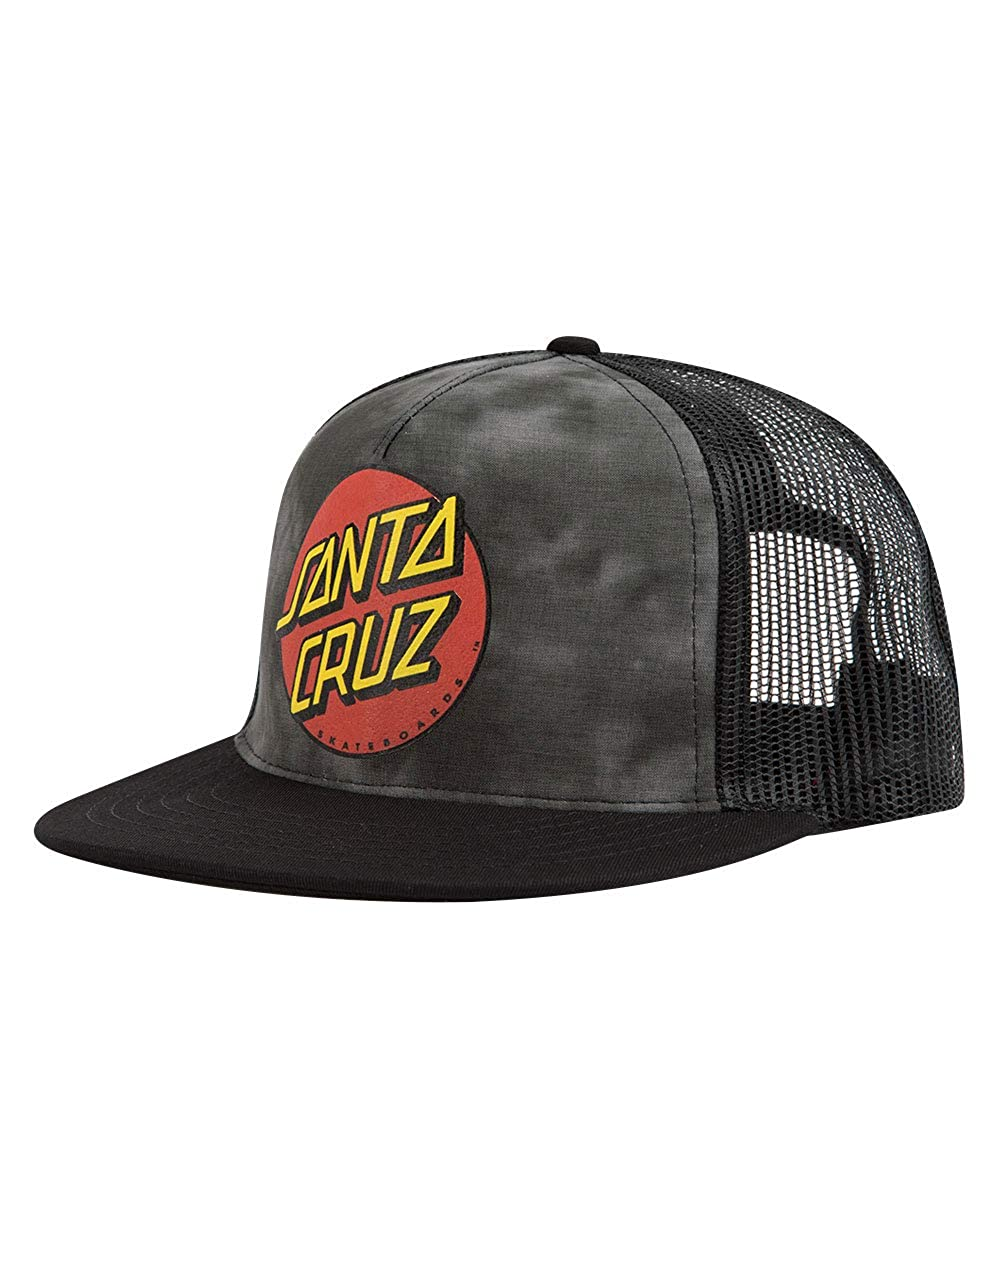 e6458a5167c85 Santa Cruz Mens Classic Dot Trucker Mesh Adjustable Hat One Size Black at  Amazon Men s Clothing store